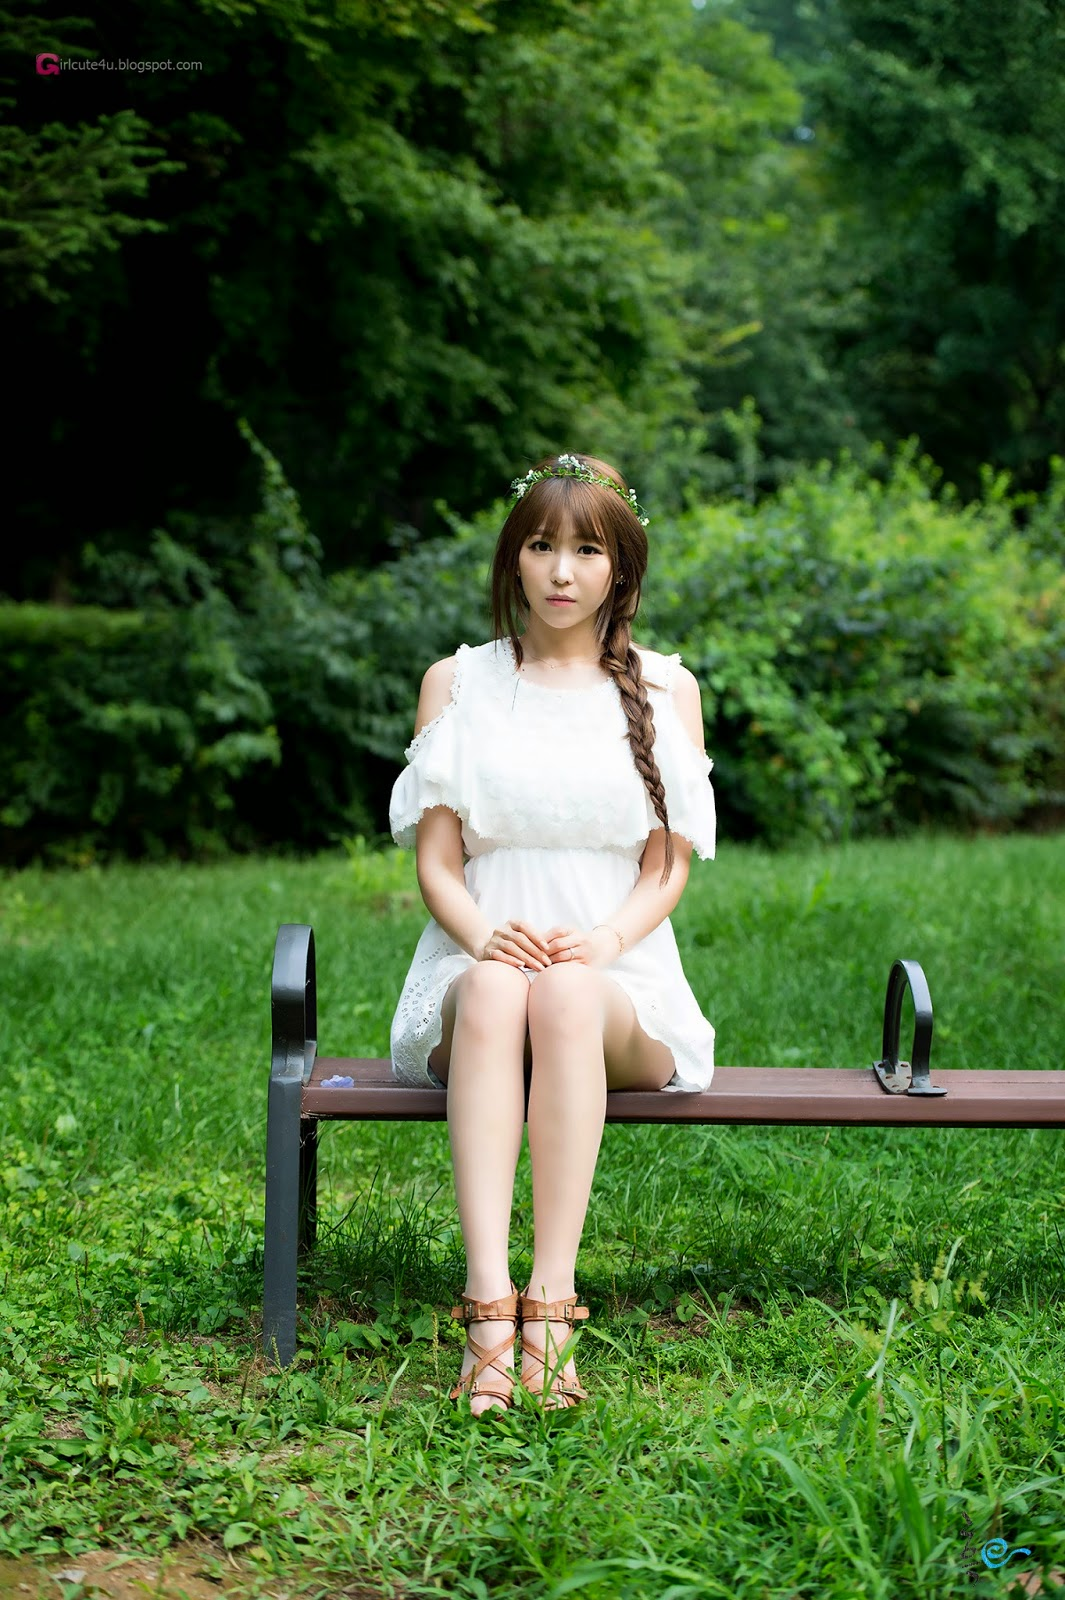 2 Lovely Lee Eun Hye In Outdoor Photo Shoot - very cute asian girl-girlcute4u.blogspot.com